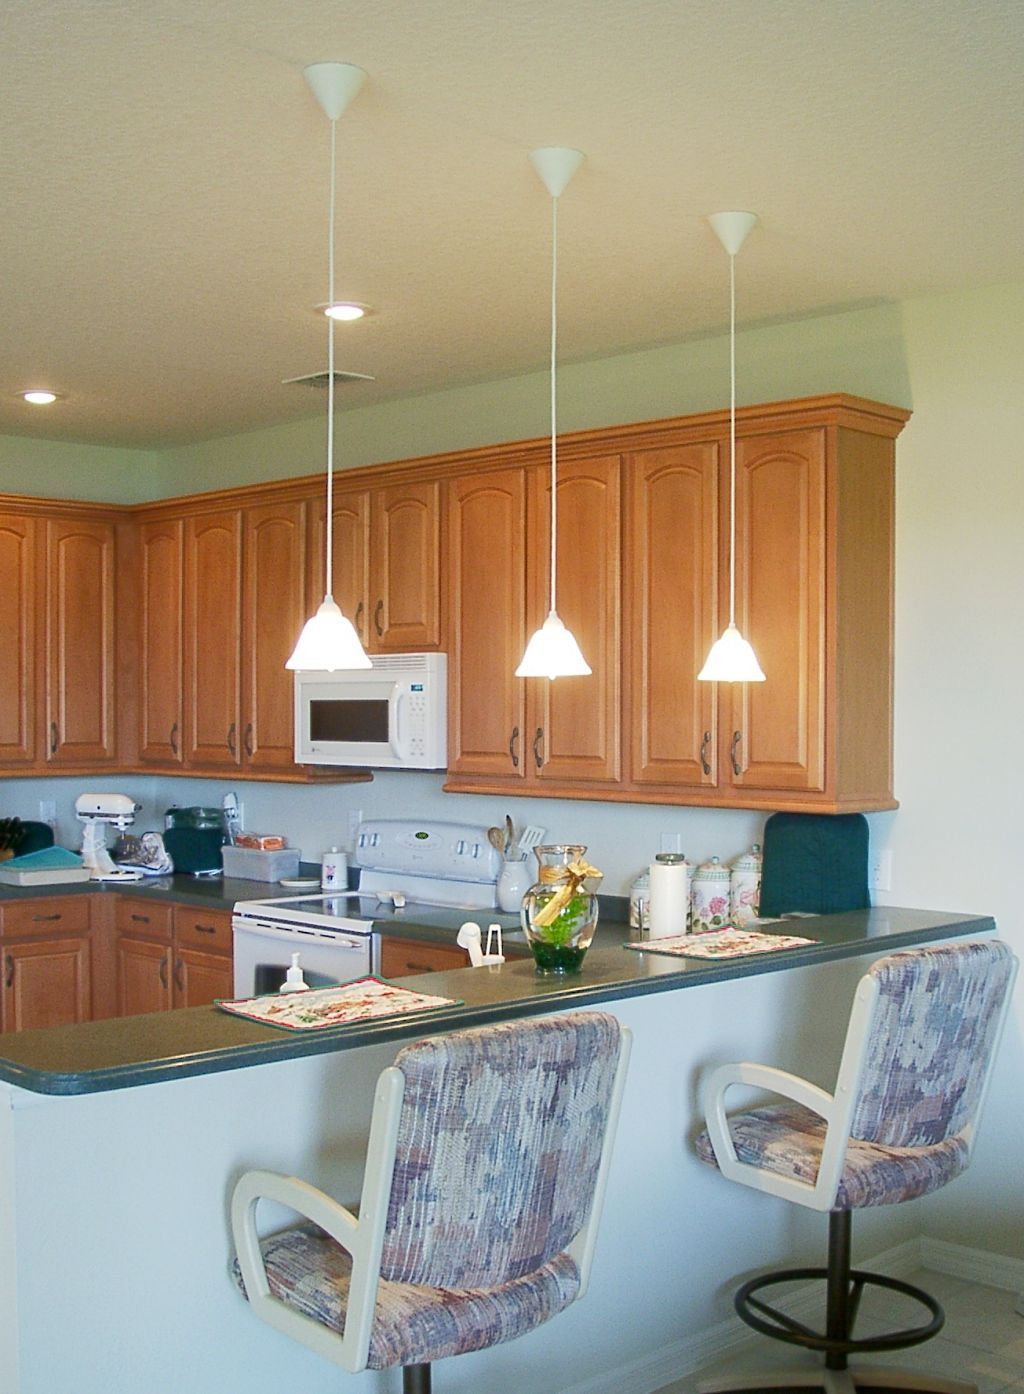 Amazing Mini Pendant Lights Over Kitchen Island - Pendulum lights over island